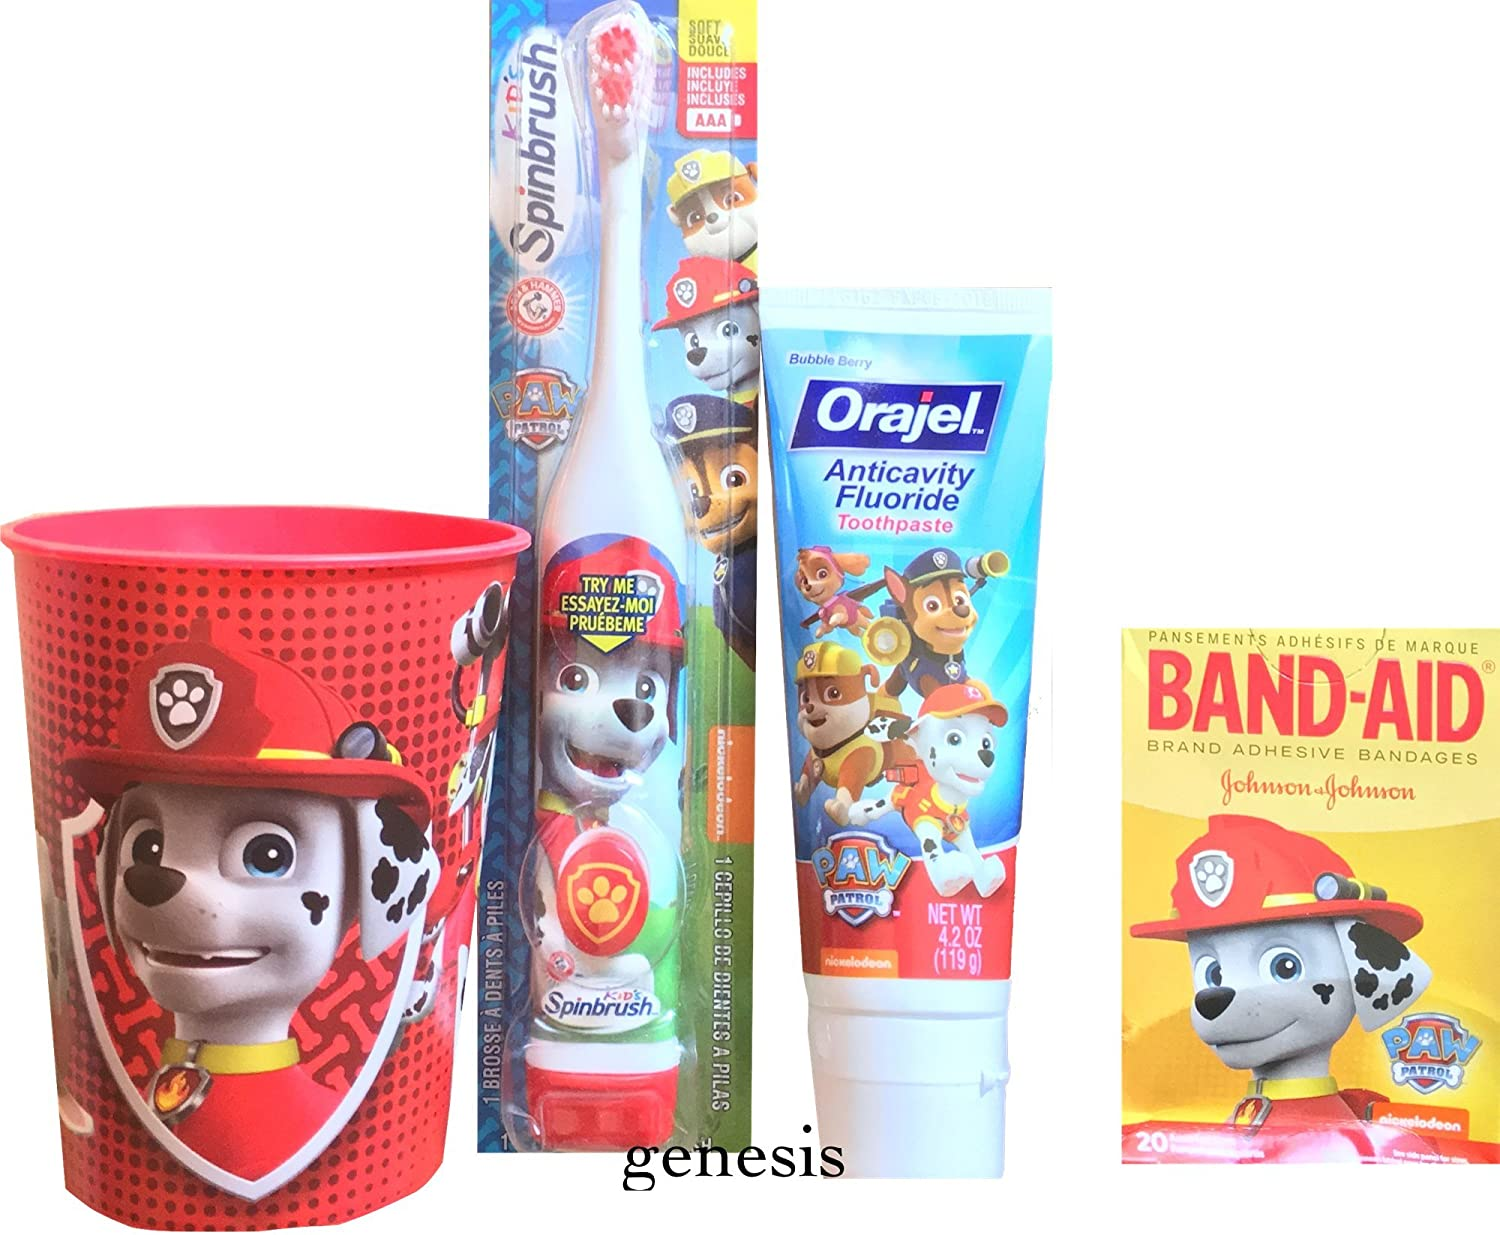 Amazon.com : Paw Patrol Childrens Oral Hygiene Care Set Powered Toothbrush & Fluoride Toothpaste, Band Aids & Mouth Rinse Cup (Chase) : Baby